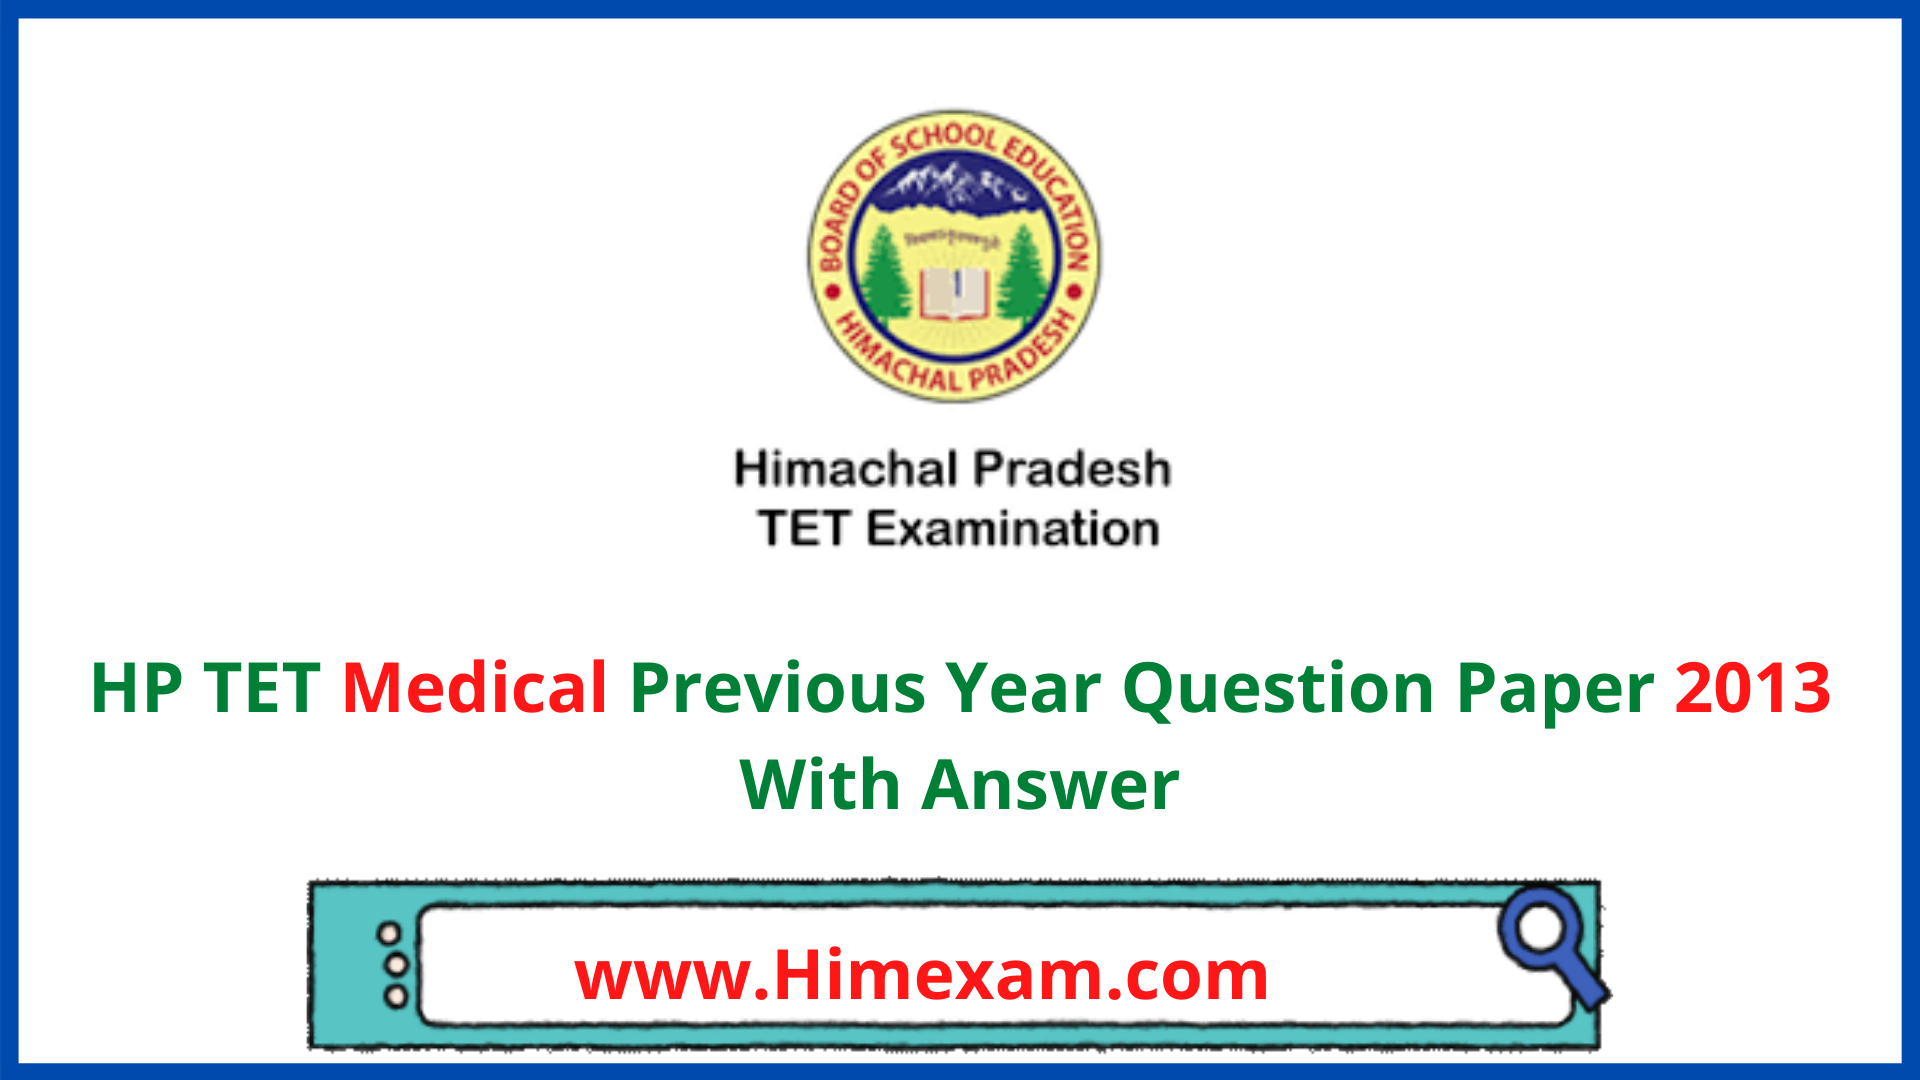 HP TET Medical Previous Year Question Paper 2013 With Answer